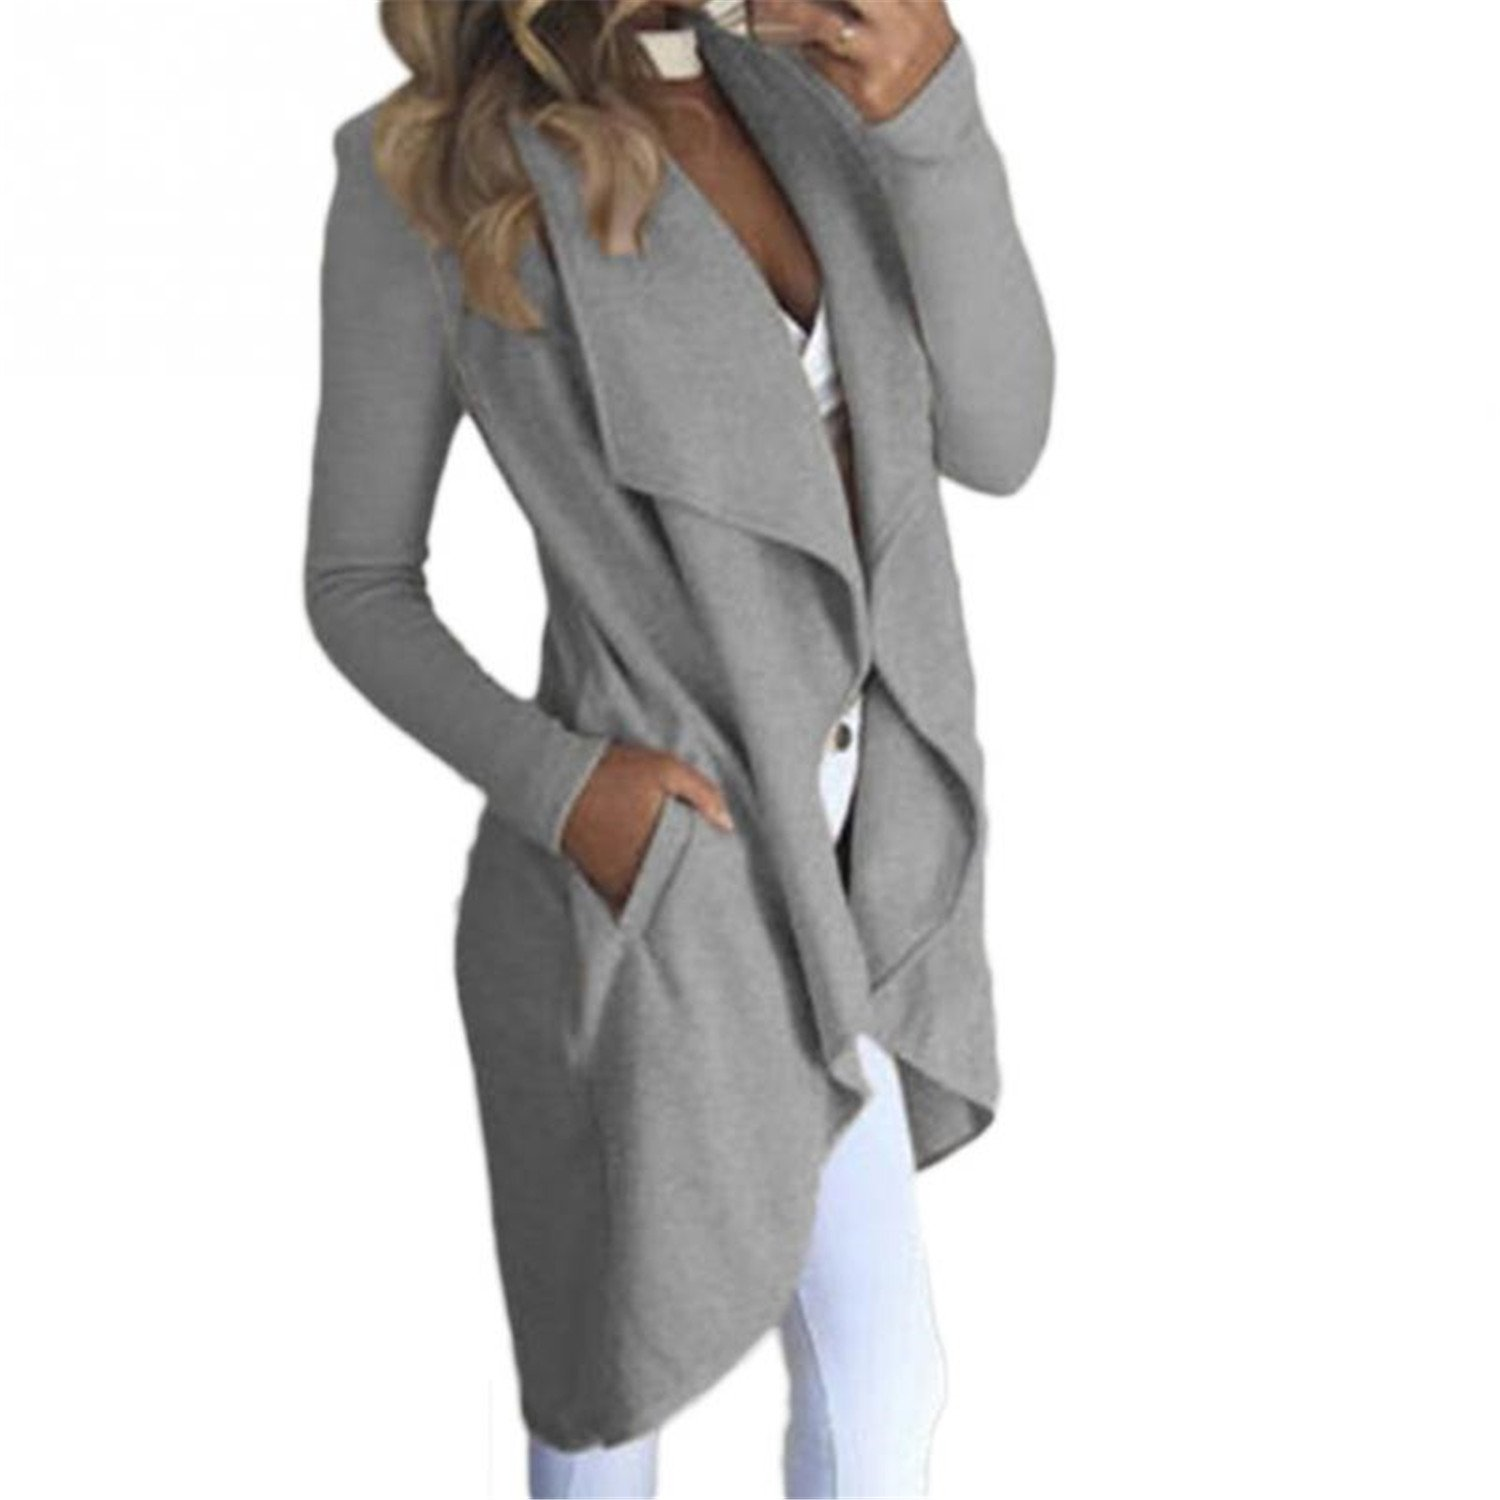 MRxcff Autumn Women's Cotton Trench Coat Casual Long Outerwear Loose Lady